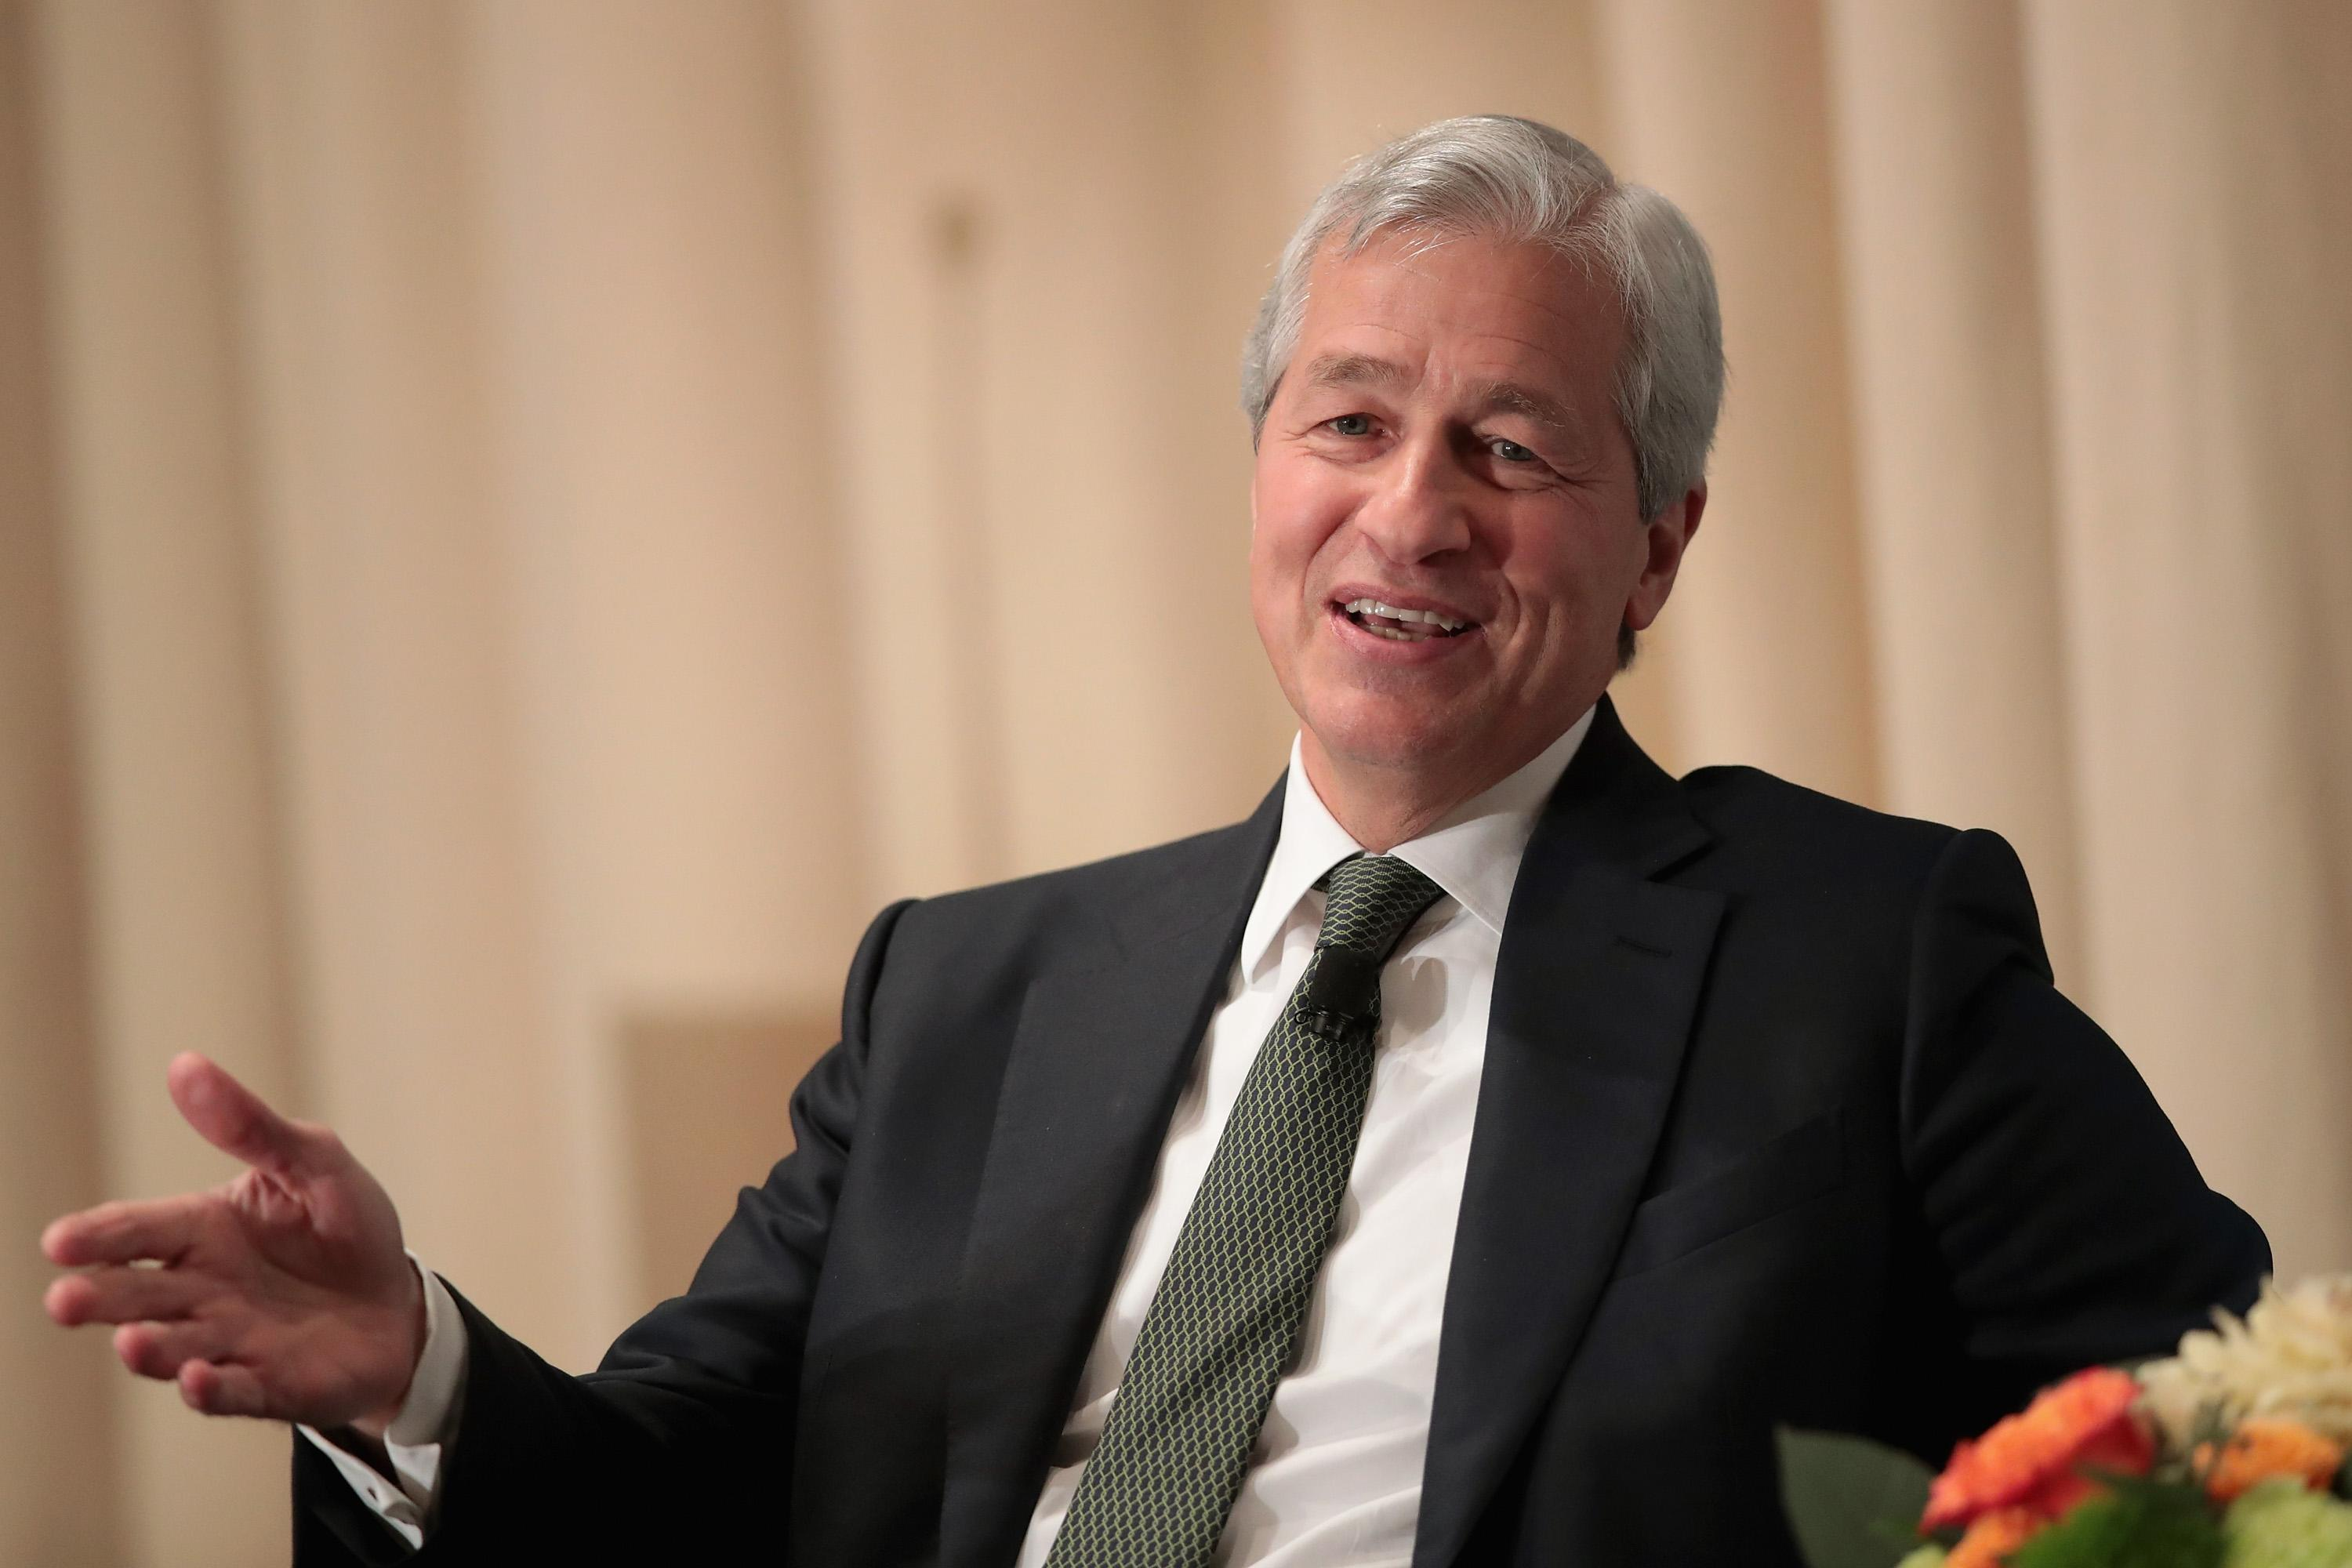 'I'm Smarter.' Jamie Dimon Says He Could Beat Trump in an Election — and Quickly Walks It Back